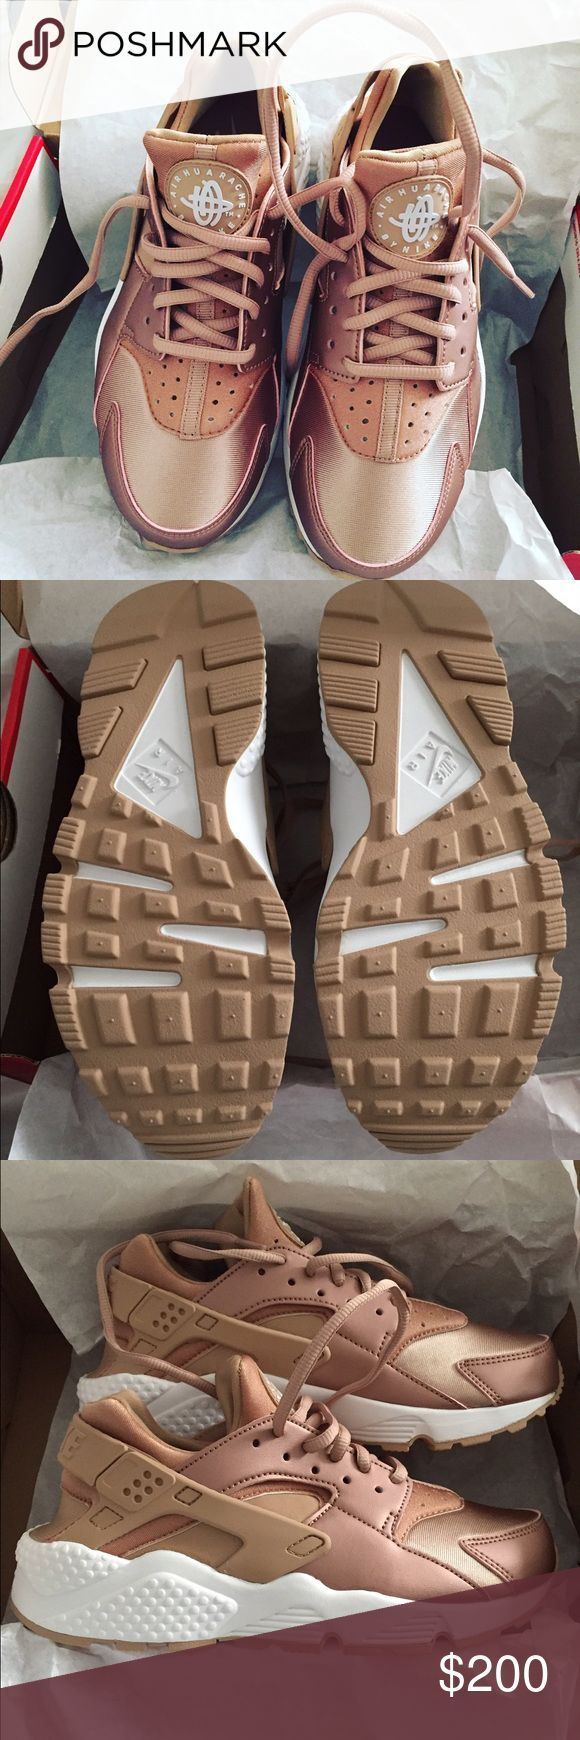 finest selection 9a24f 20b3a Trendy Sneakers 2017  2018   Nike Rose gold Huarache . Limited edition  Brand new never worn Nike limited edit